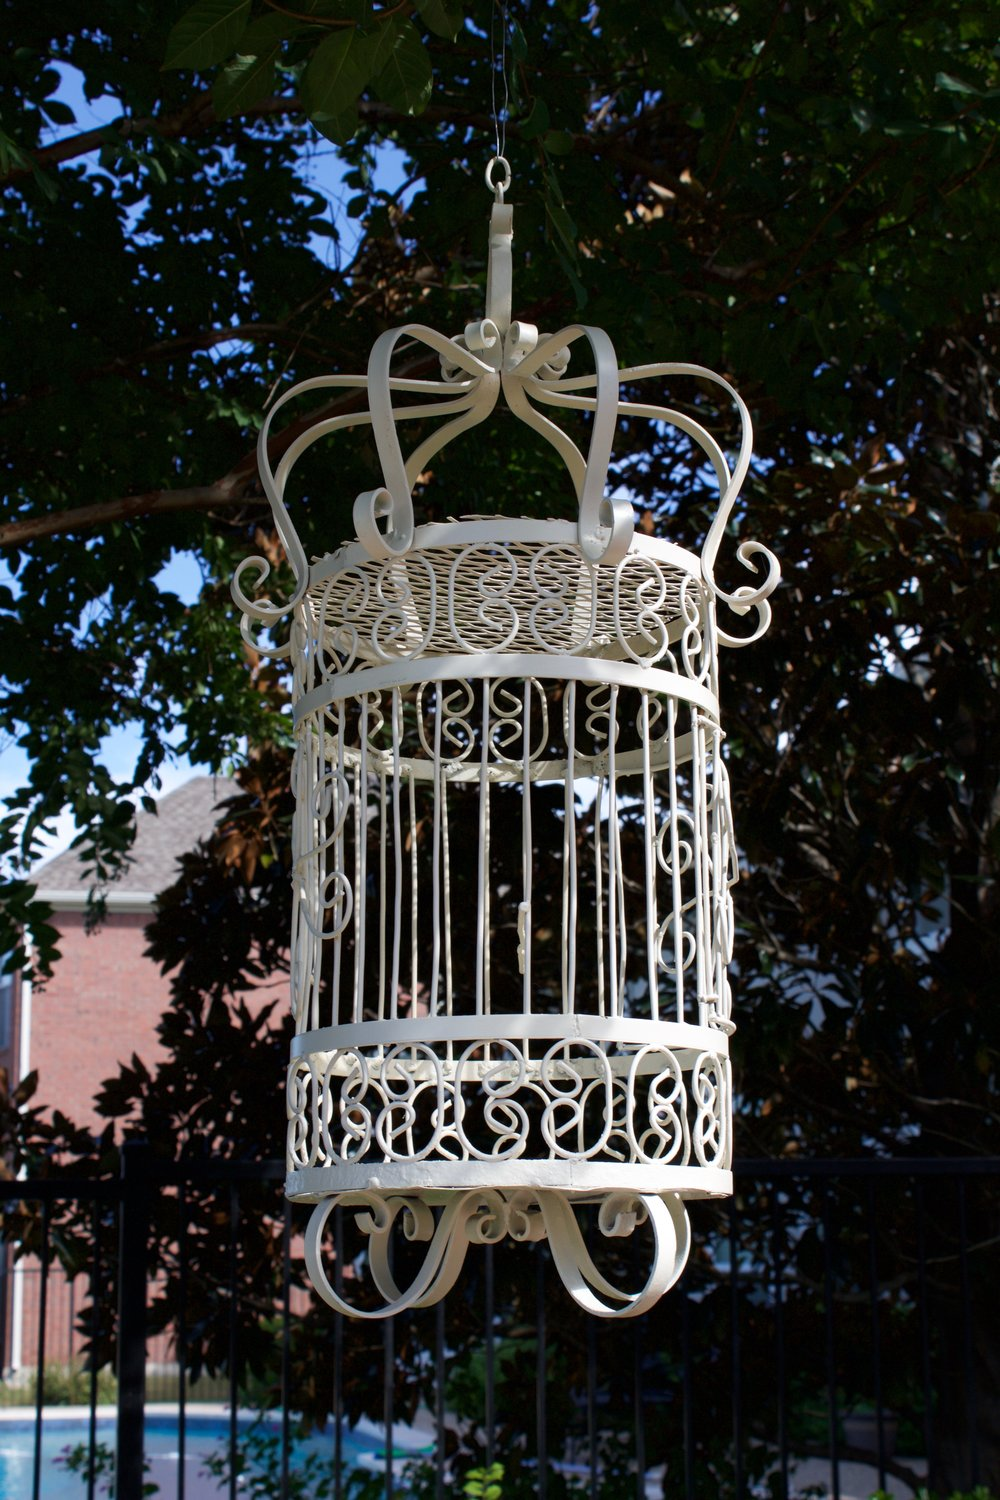 Romantic bird cages-many sizes-from $20